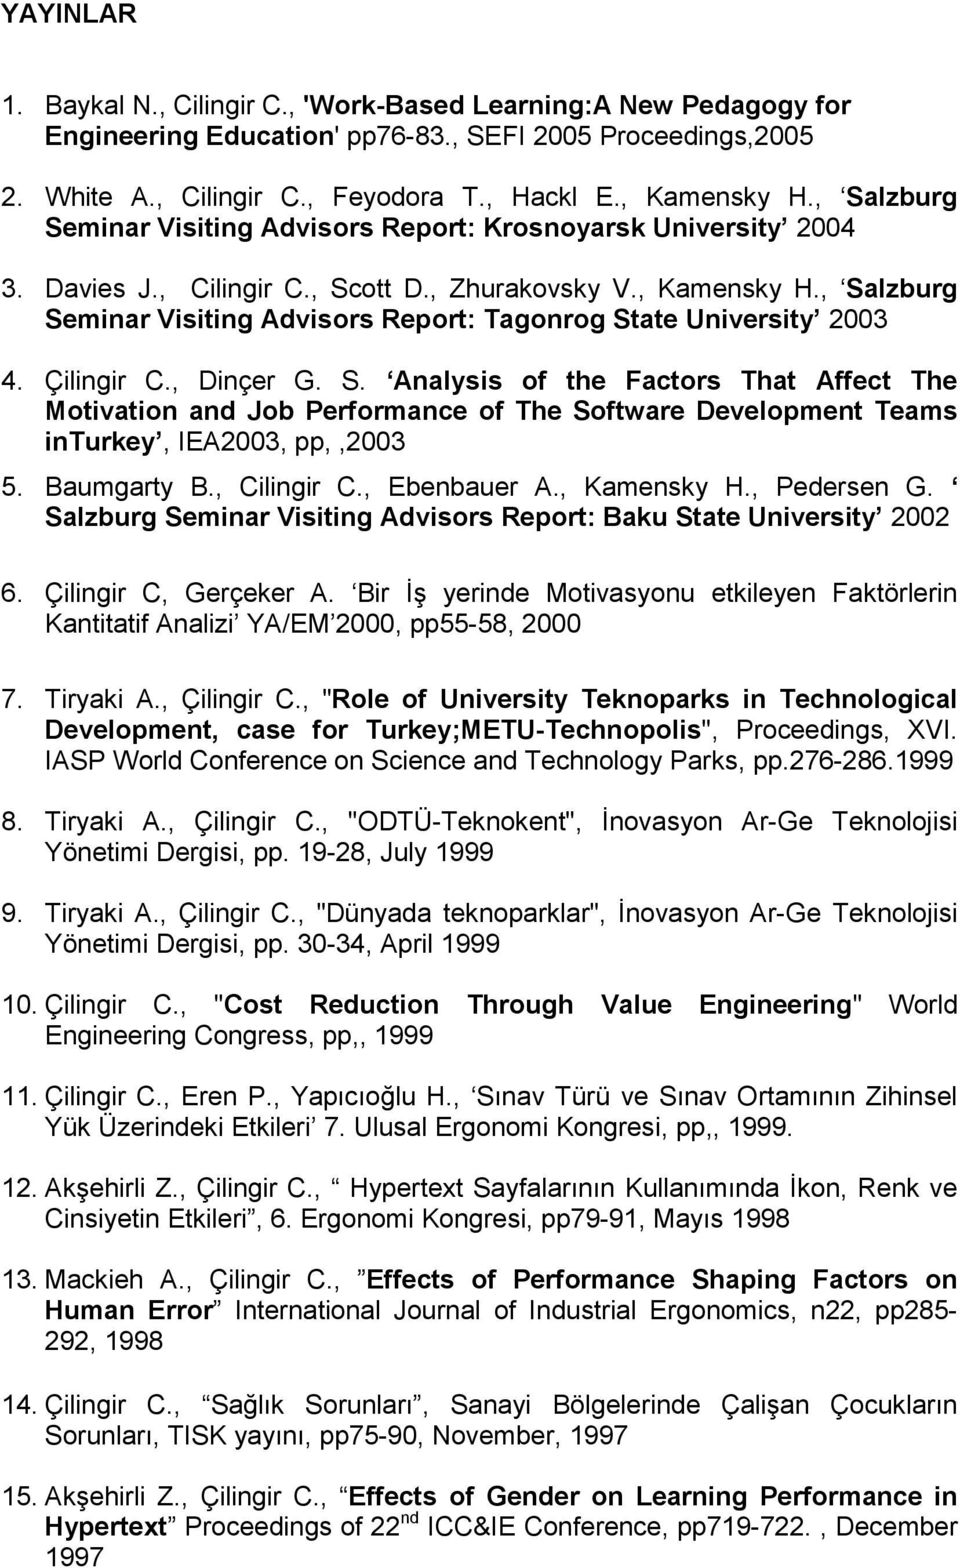 , Salzburg Seminar Visiting Advisors Report: Tagonrog State University 2003 4. Çilingir C., Dinçer G. S. Analysis of the Factors That Affect The Motivation and Job Performance of The Software Development Teams inturkey, IEA2003, pp,,2003 5.